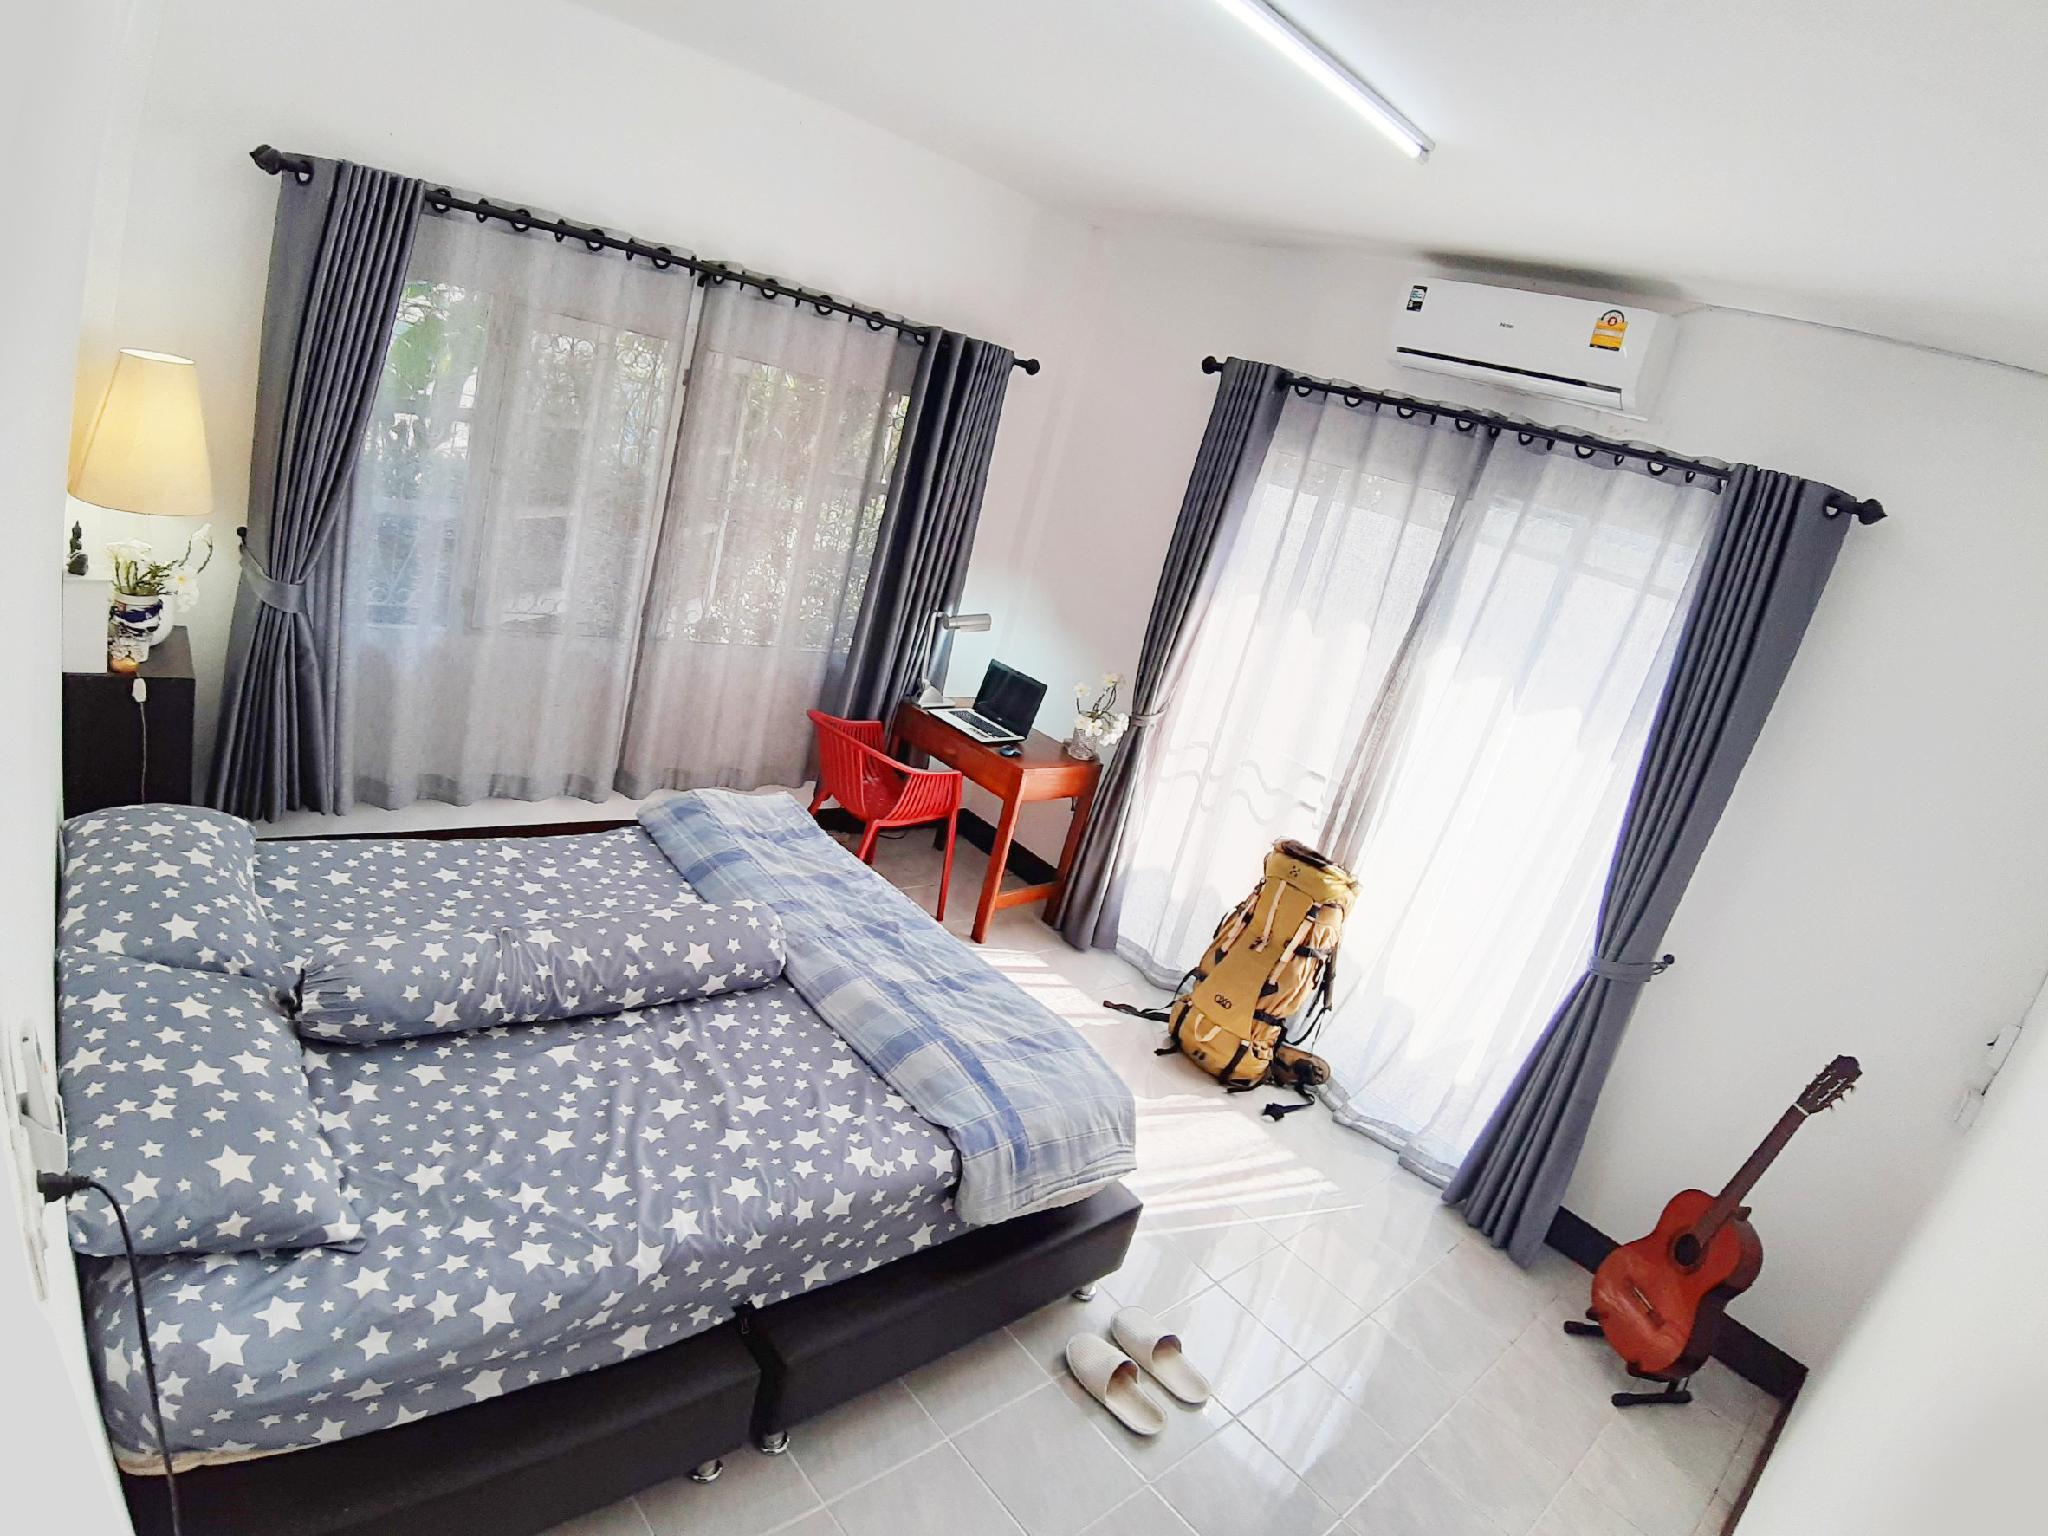 Mj Bed Room   HomeStay With Host